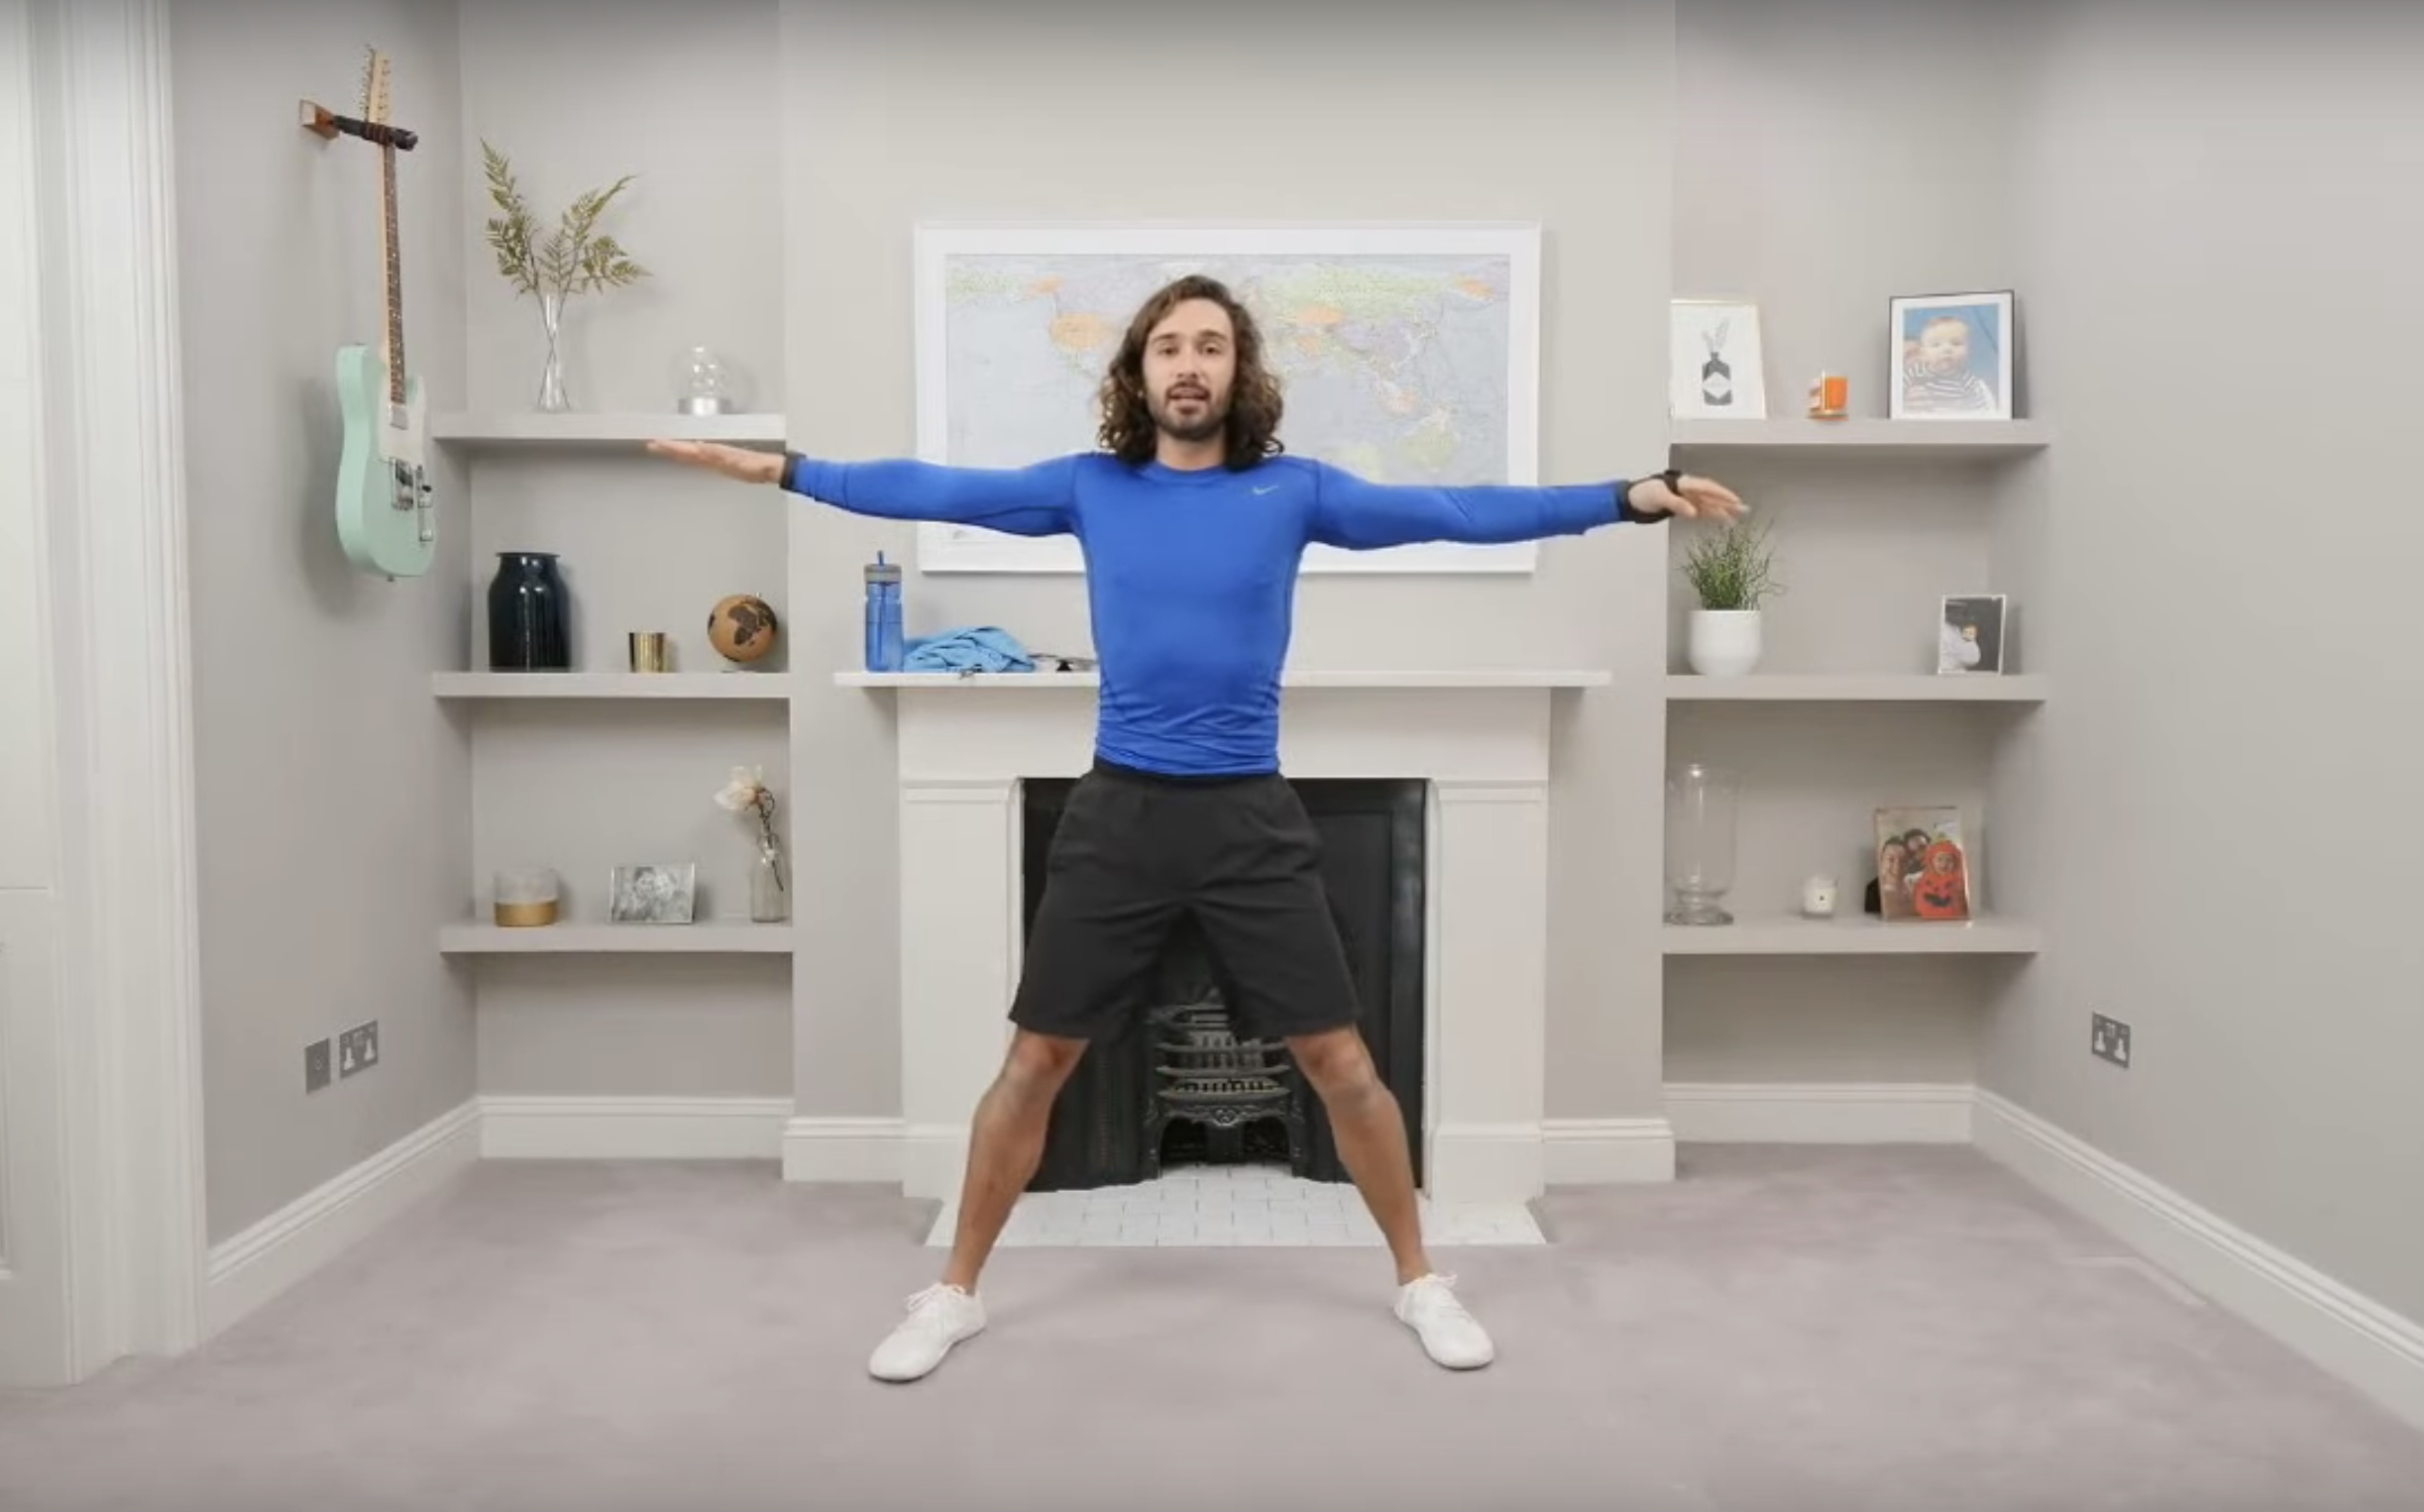 Joe Wicks doing PE lessons for kids on YouTube